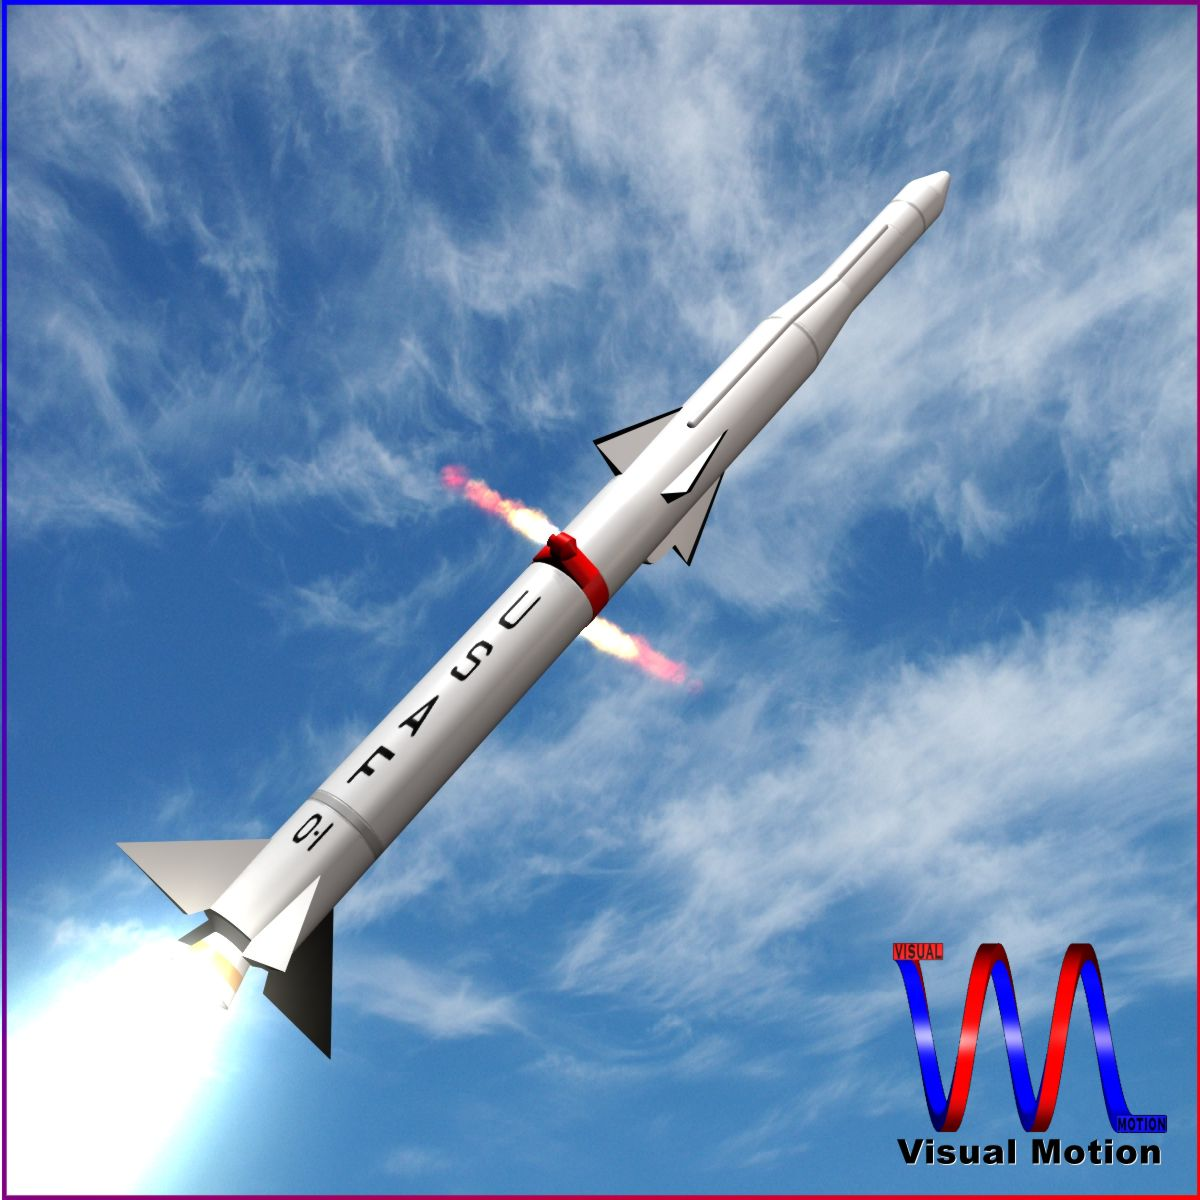 usaf blue scout jr rocket 3d model 3ds dxf cob x obj 153019